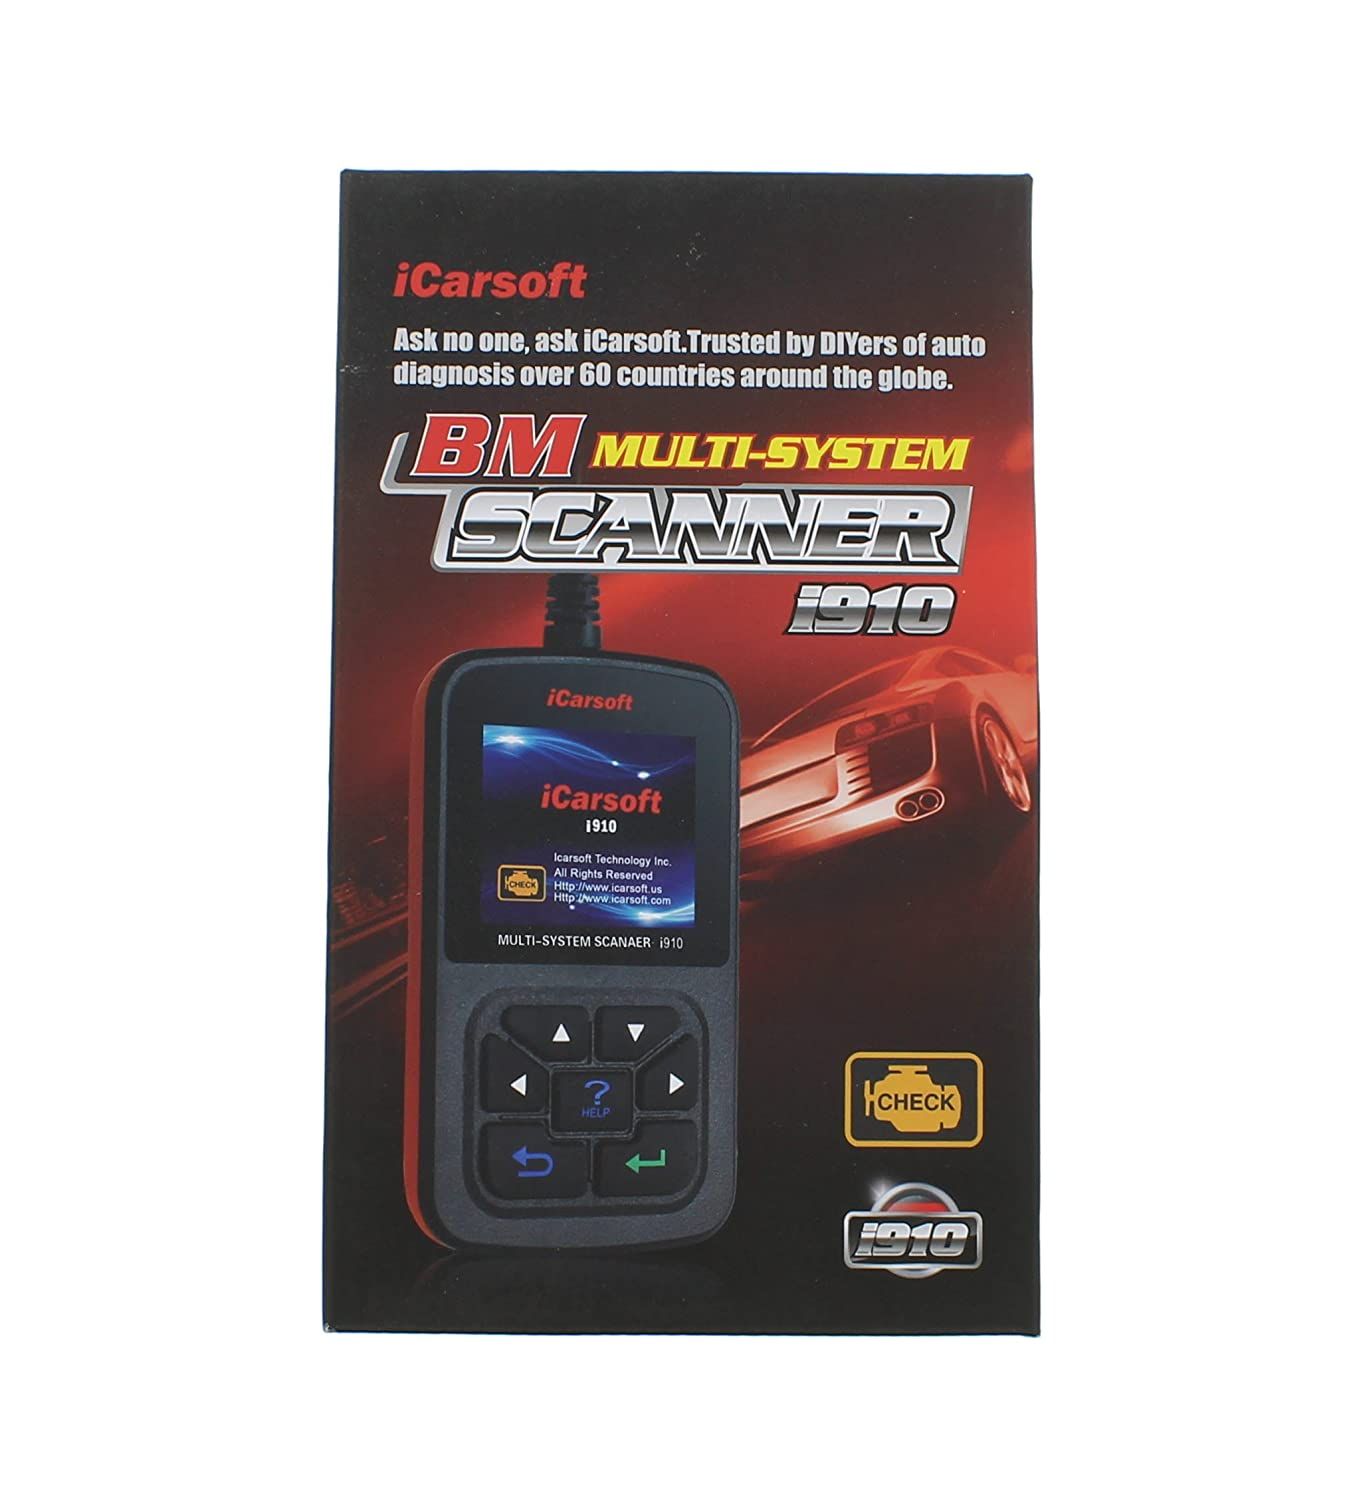 iCarSoft i910 multisystem scan tool is among the best BMW scanners. It can diagnose various car systems